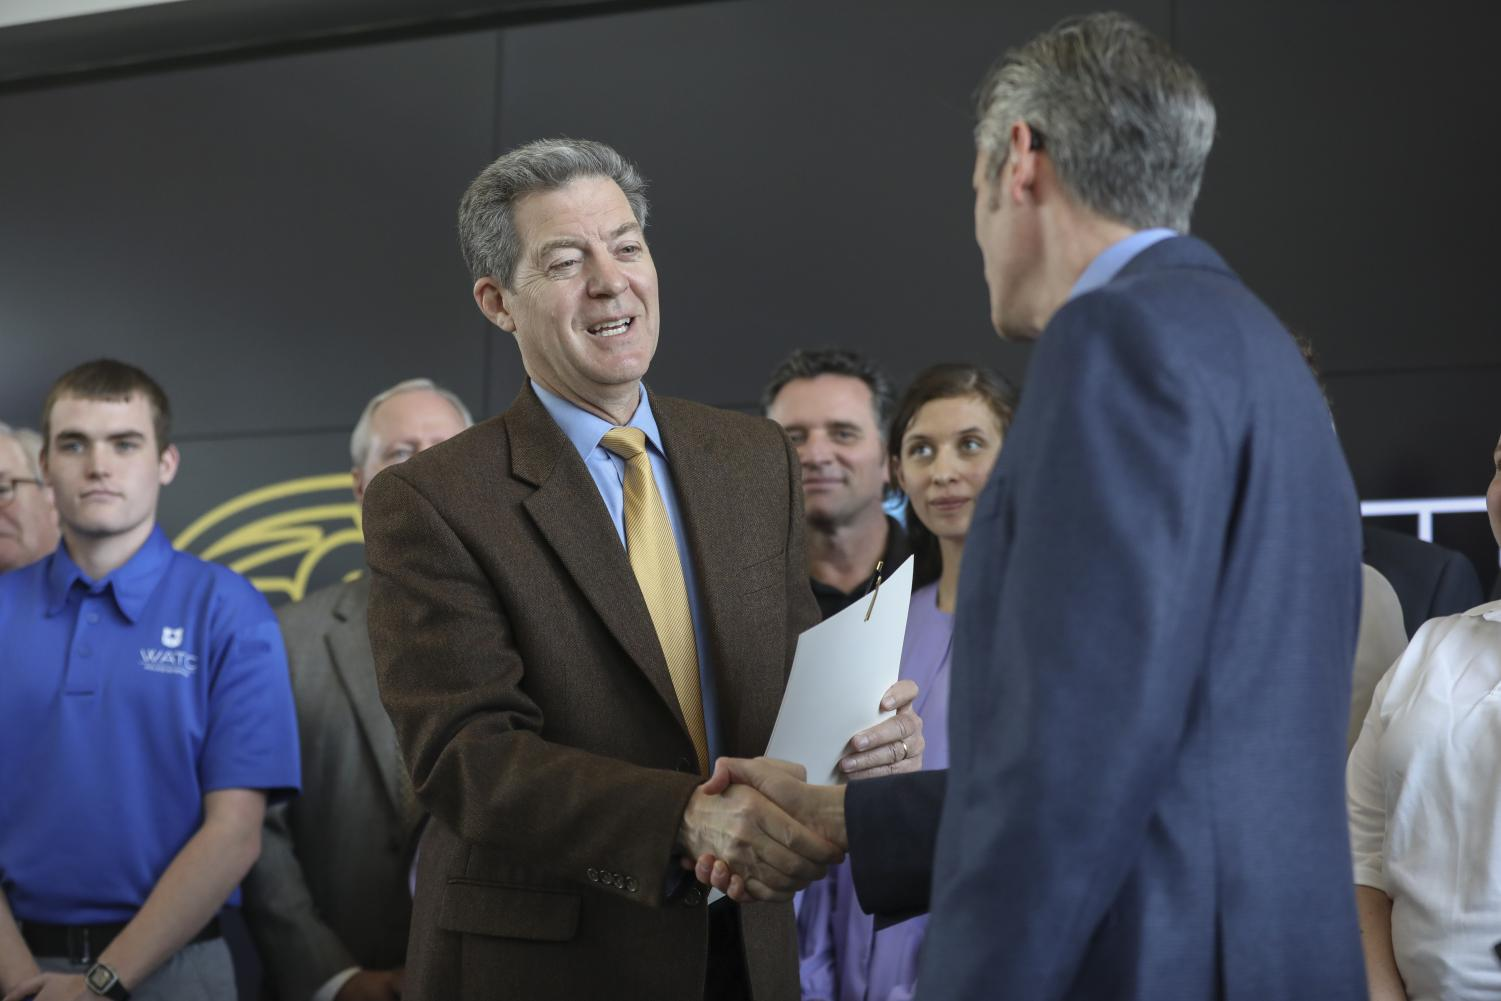 Senate to hold initial vote on Brownback